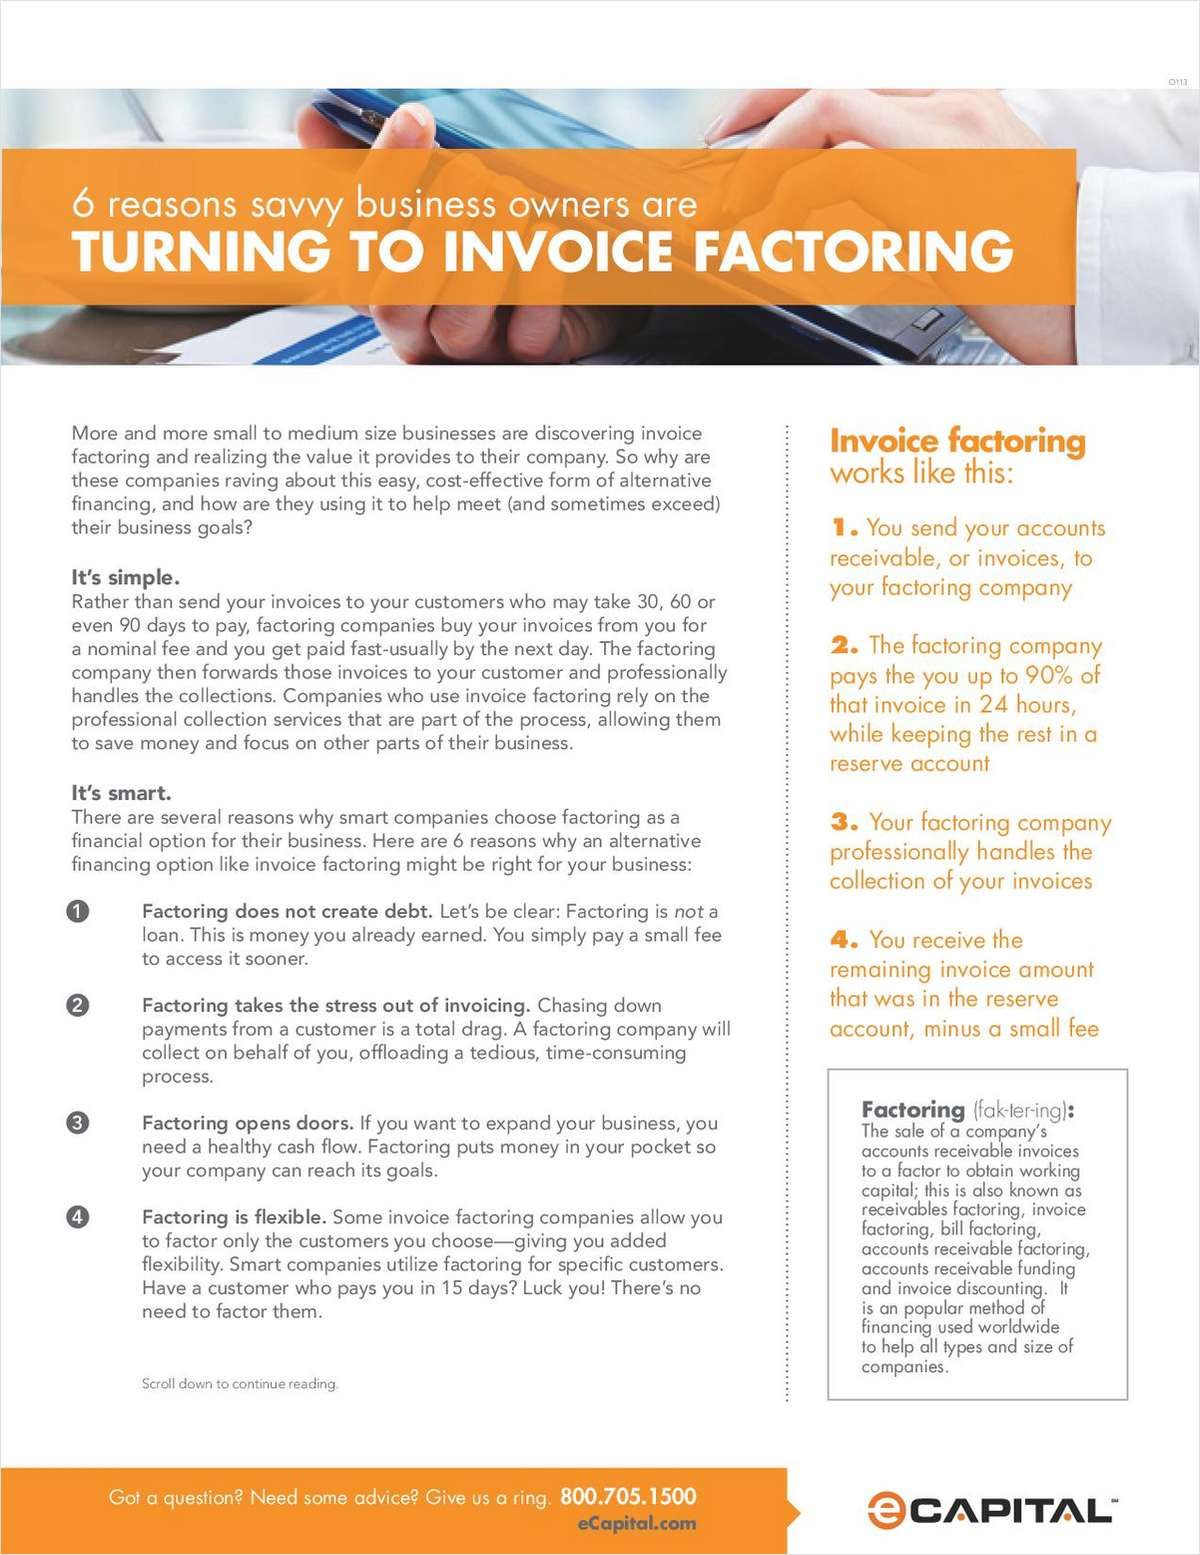 6 Reasons Savvy Small Business Owners are Turning to Invoice Factoring